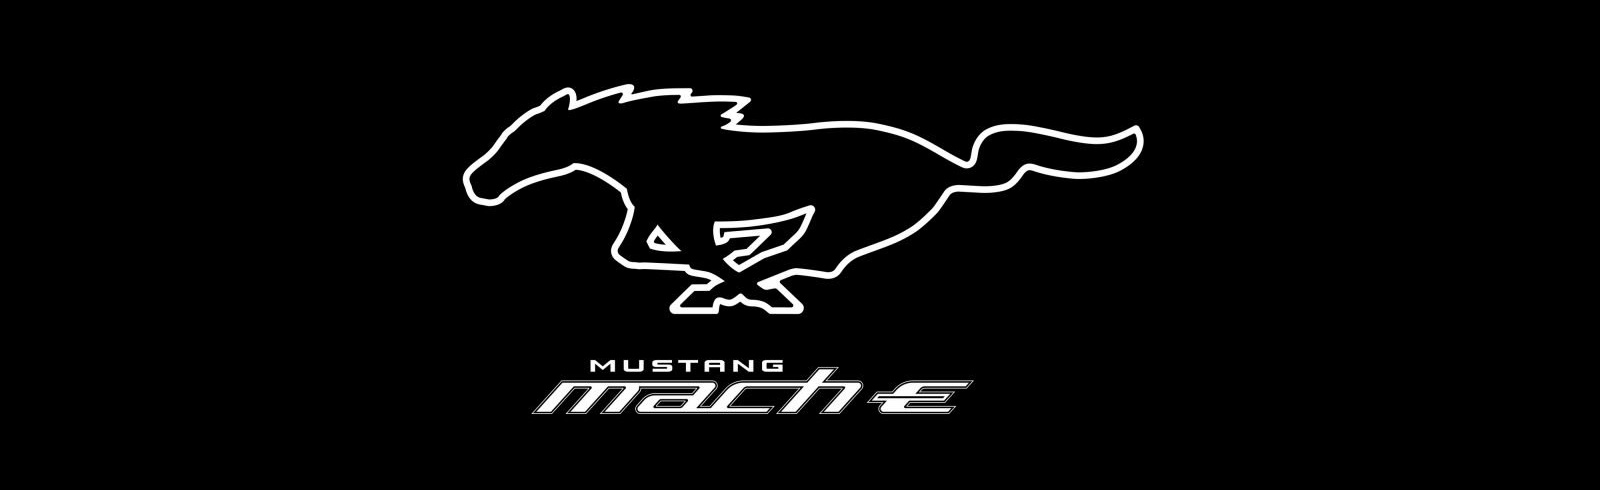 The all-electric Mustang Mach-E SUV will be unveiled on November 17